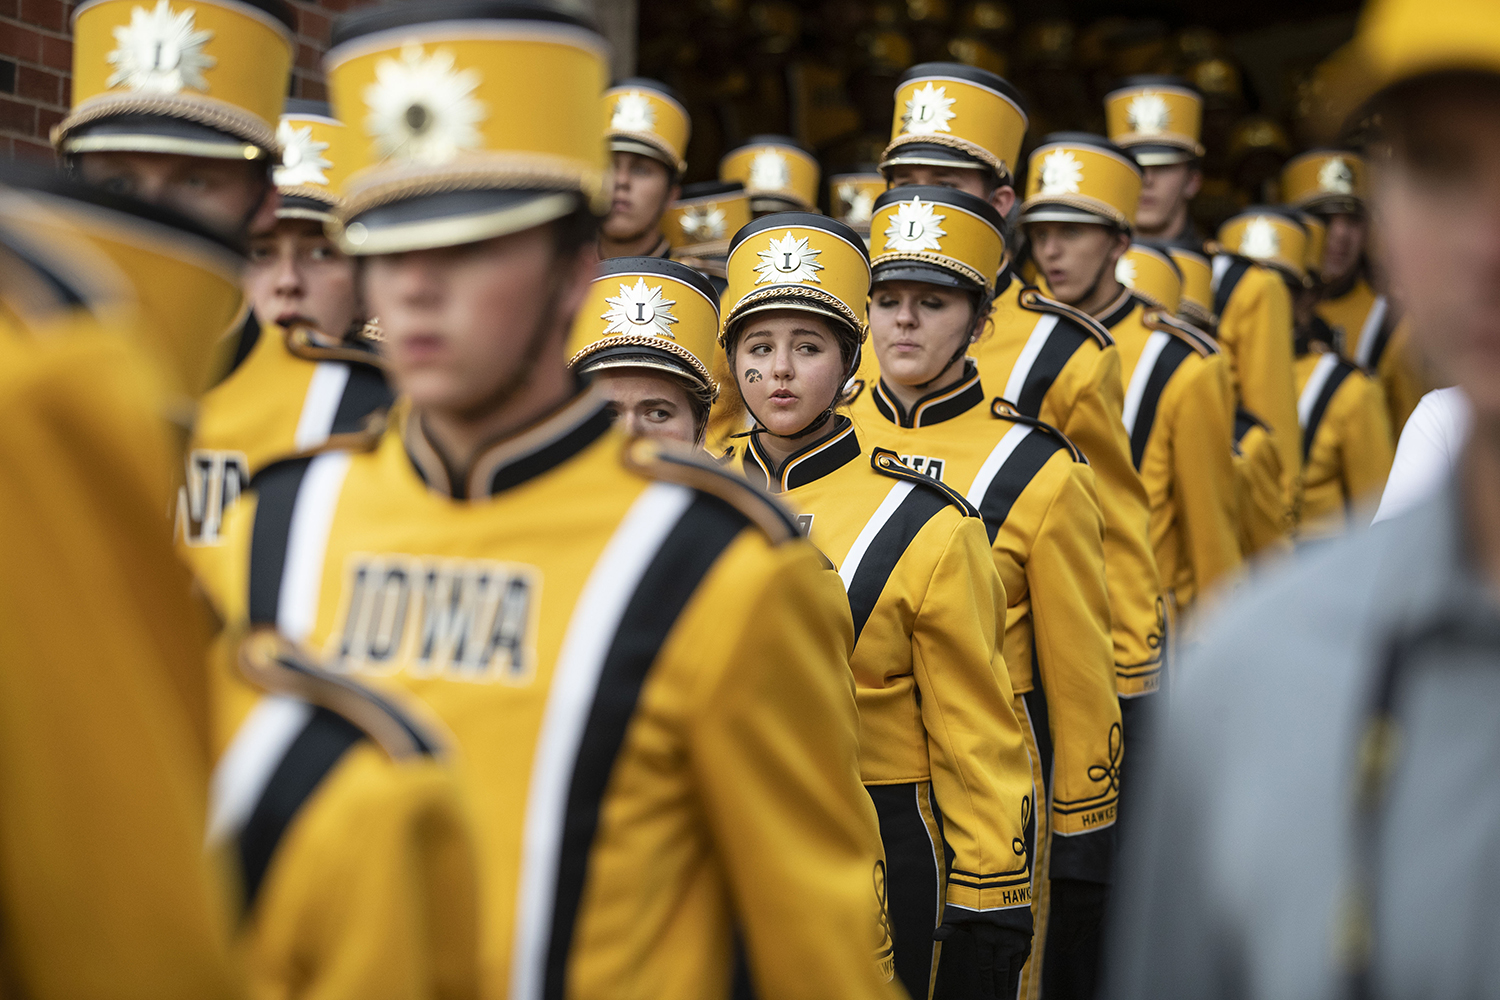 Members of the Hawkeye Marching Band come out of the Northwest tunnel during Iowa football vs. Miami (Ohio) at Kinnick Stadium on Aug. 31, 2019. Iowa defeated the Miami (Ohio) 38-14.